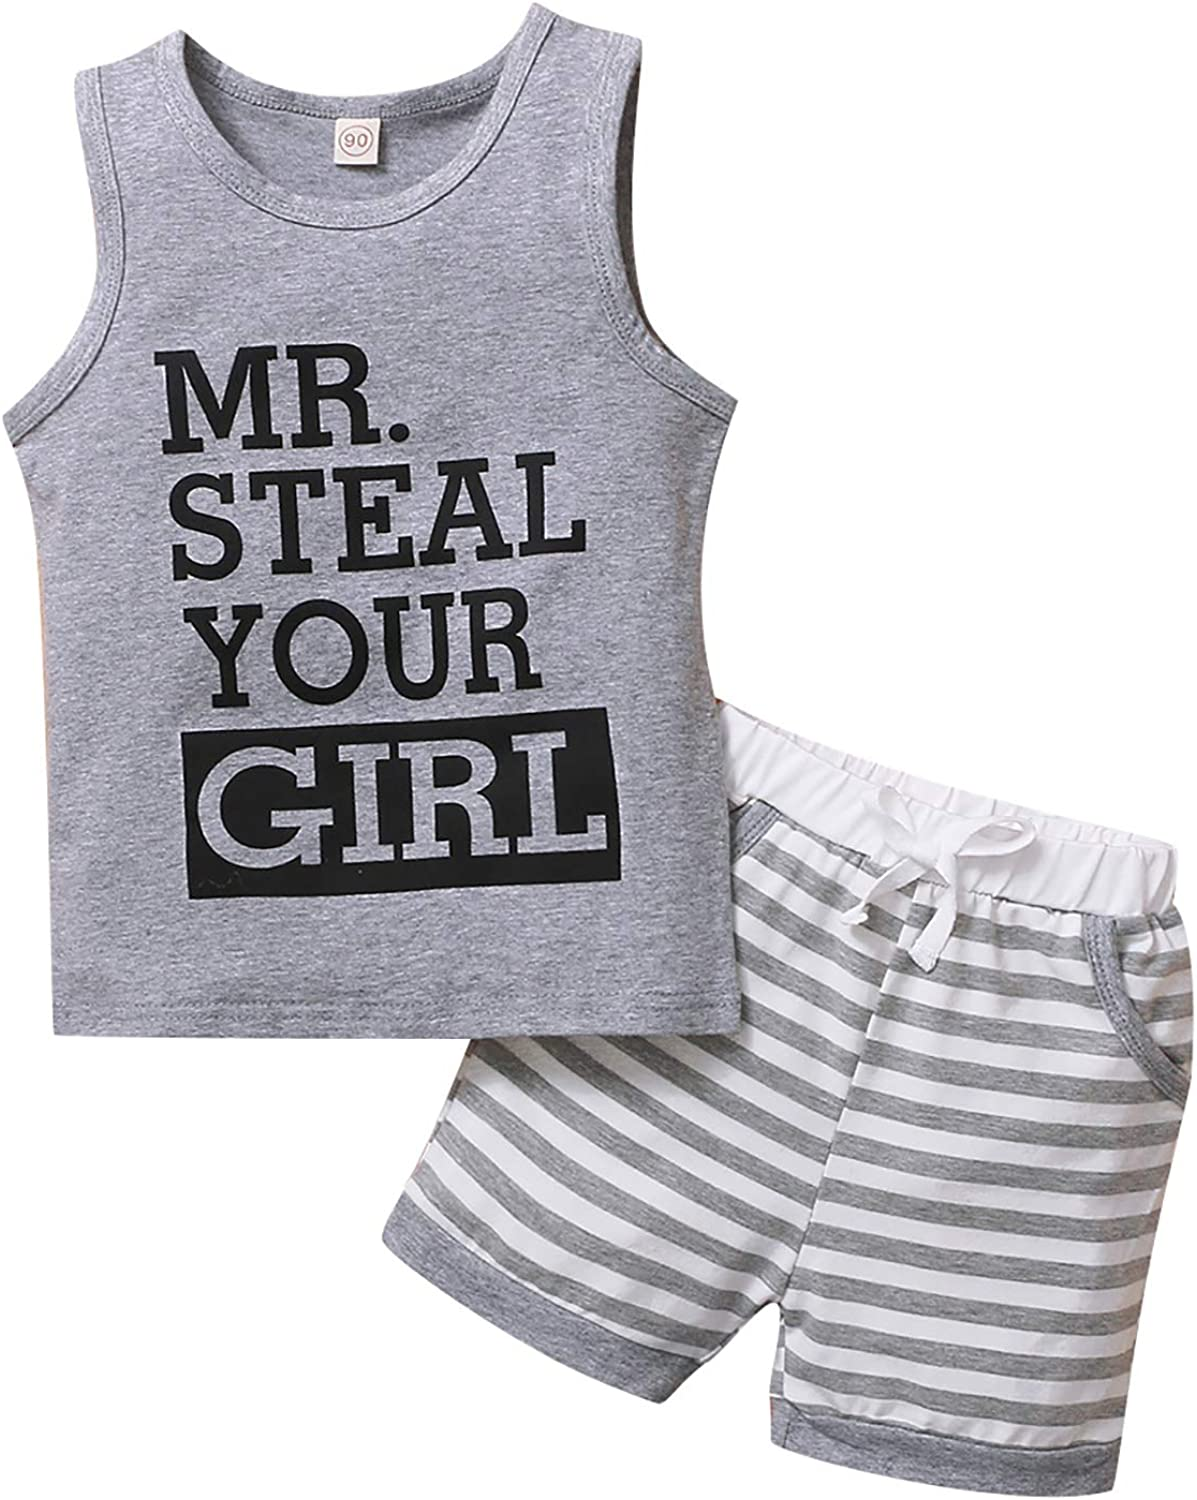 Toddler Infant Baby Boy Summer Clothes Sleeveless Letter Top T-Shirt Tank Top Camo Cargo Shorts Outfit Set